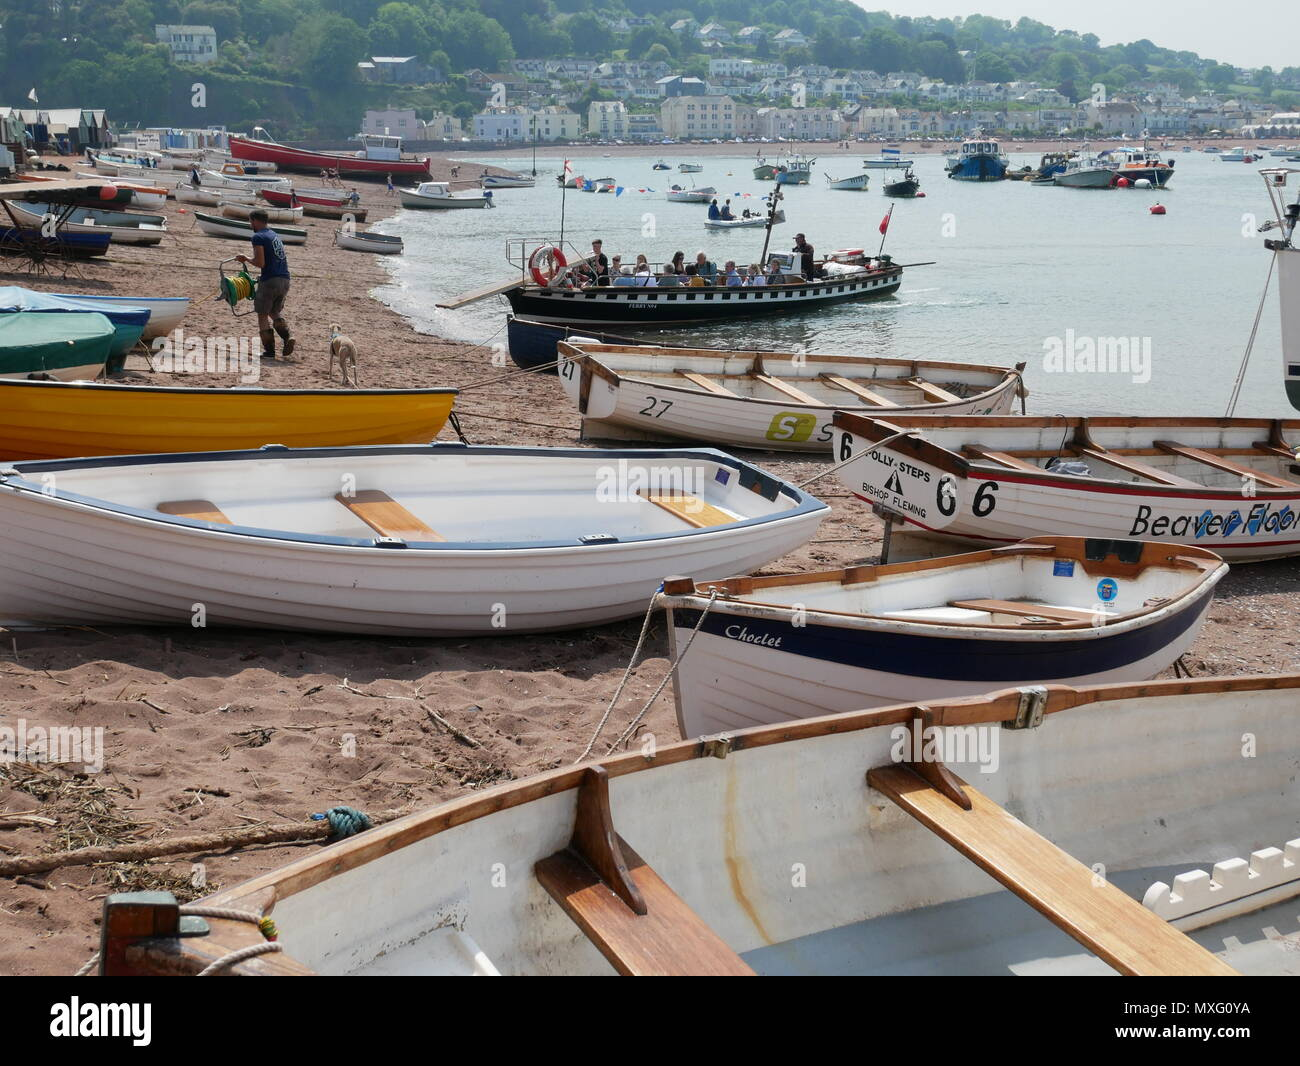 Boats on the beach and the ferry to Shaldon at Teignmouth, Devon, England. Stock Photo